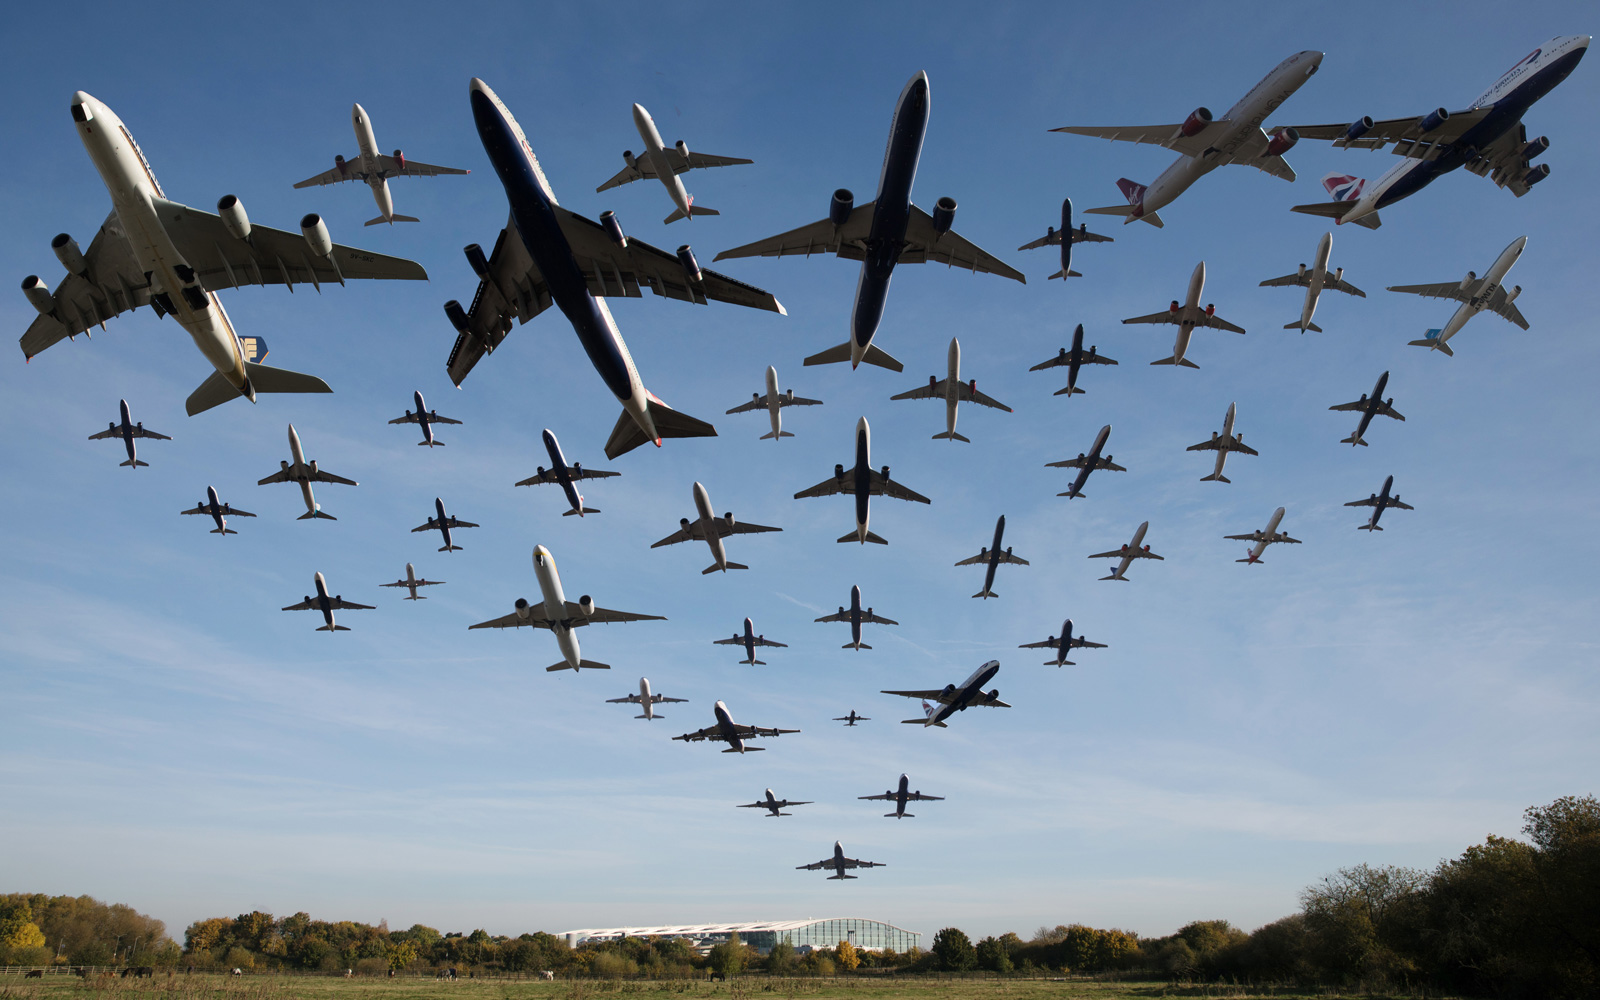 Planes taking off from Heathrow.